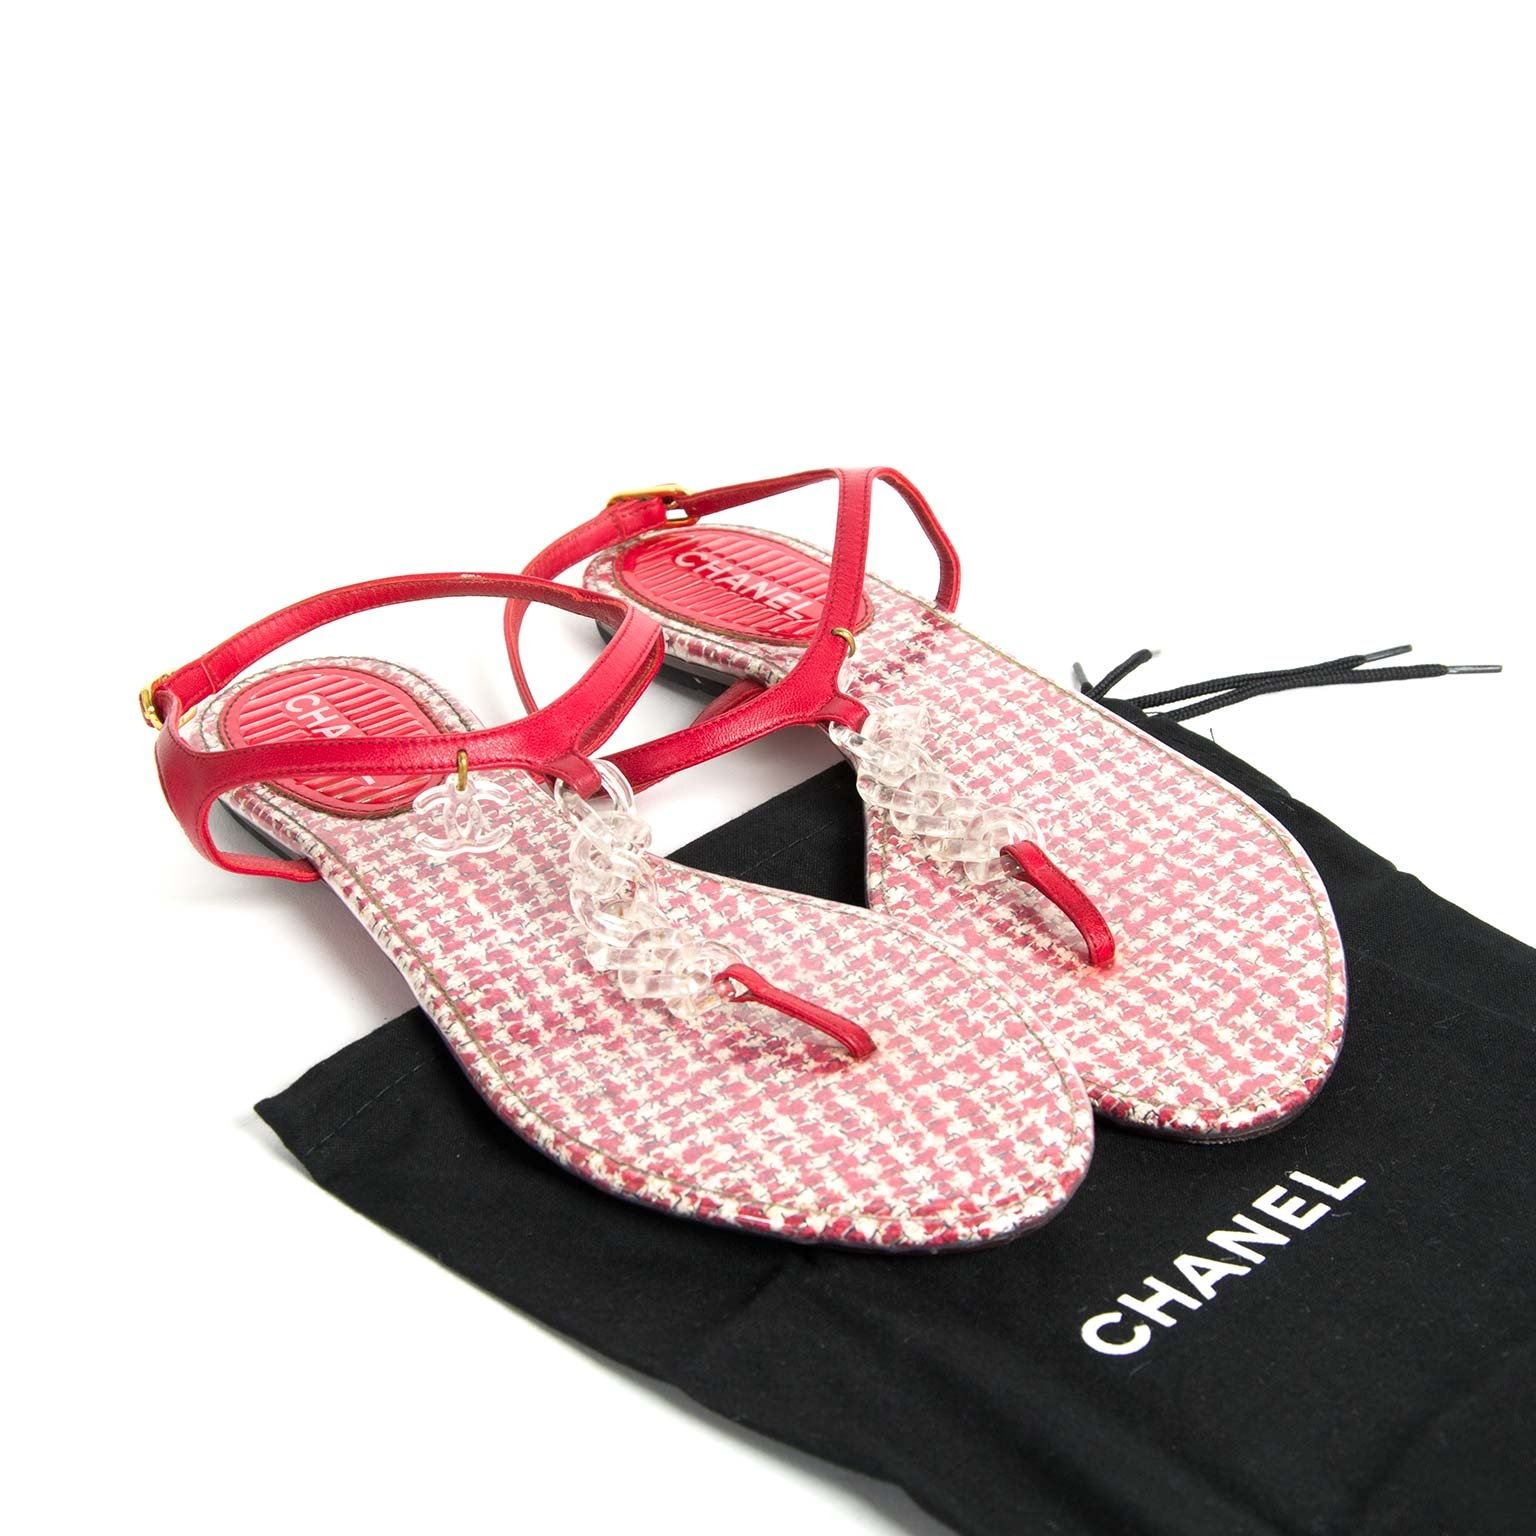 chanel pvc red tweed cc thong sandals now for sale at labellov vintage fashion webshop belgium